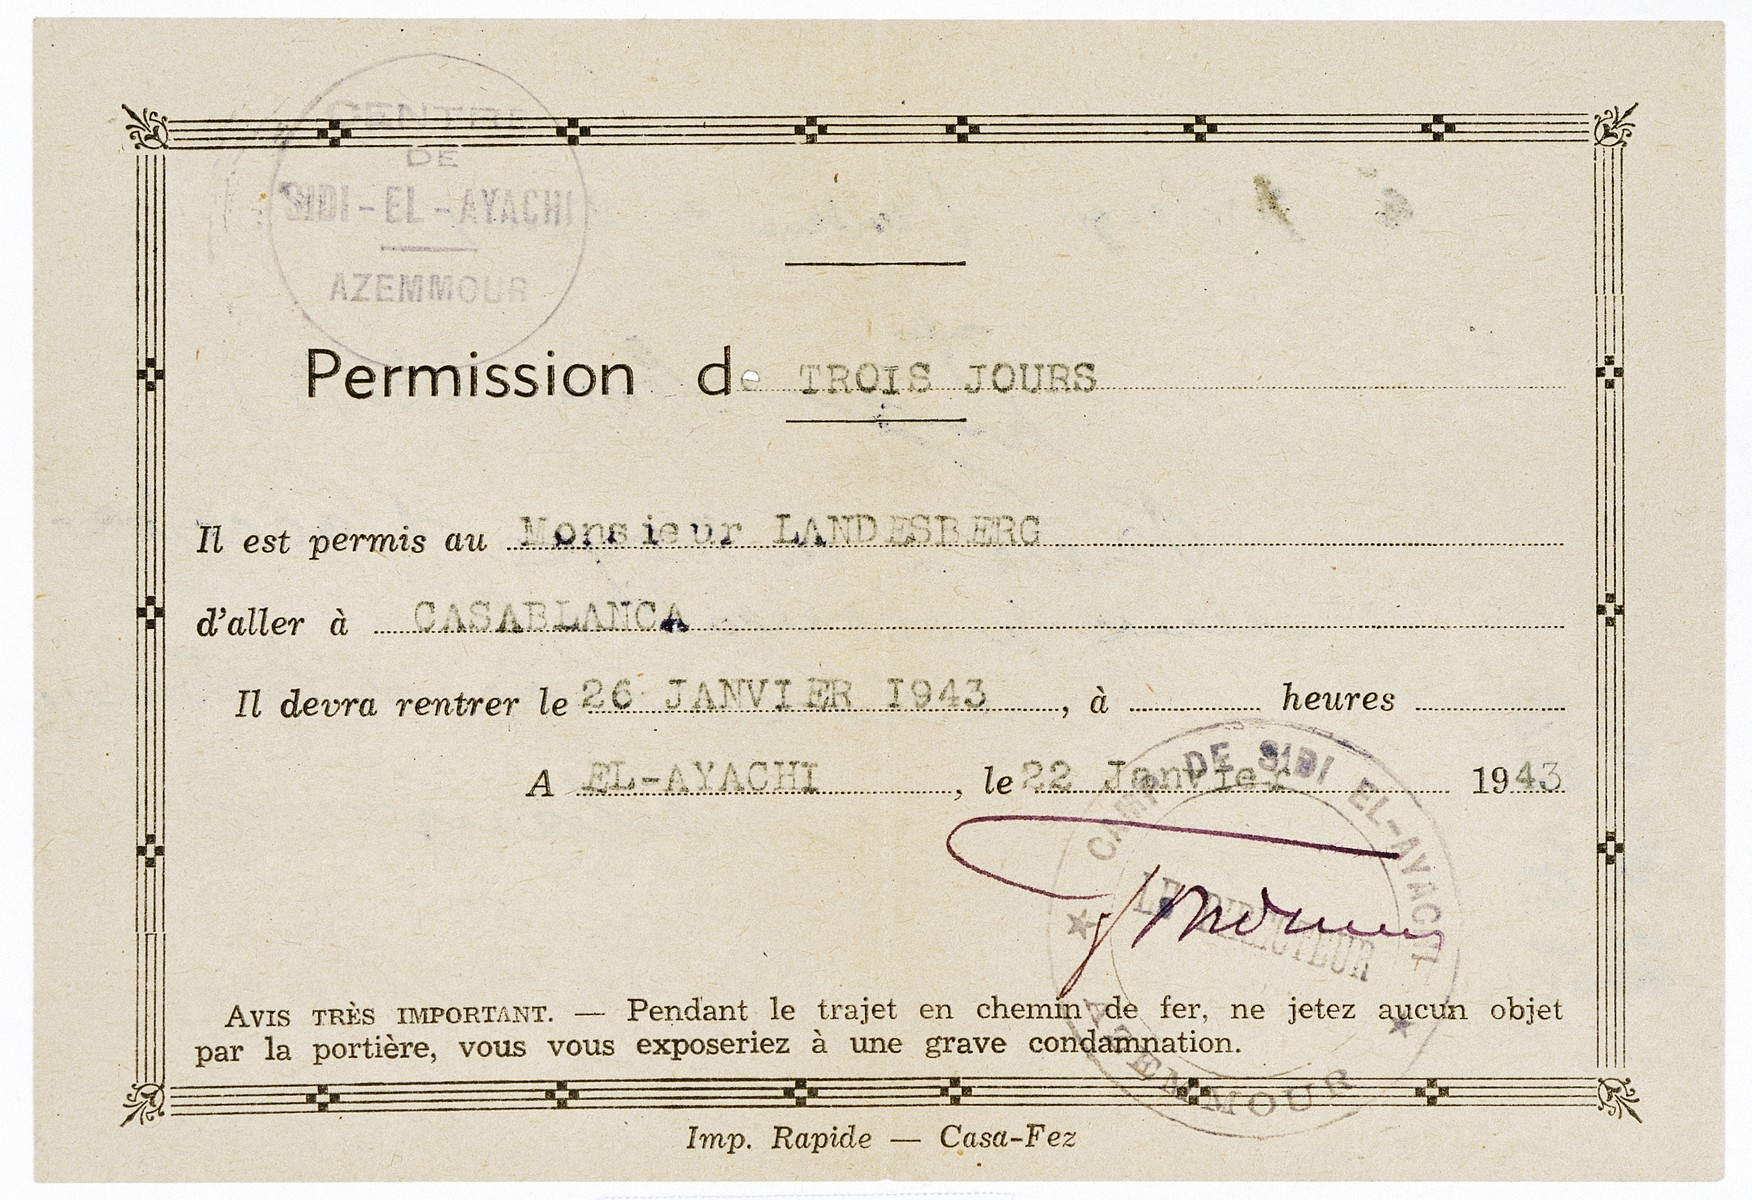 Permit issued to Hans Landesberg in the El-Ayachi concentration camp allowing him to go to Casablanca for three days.